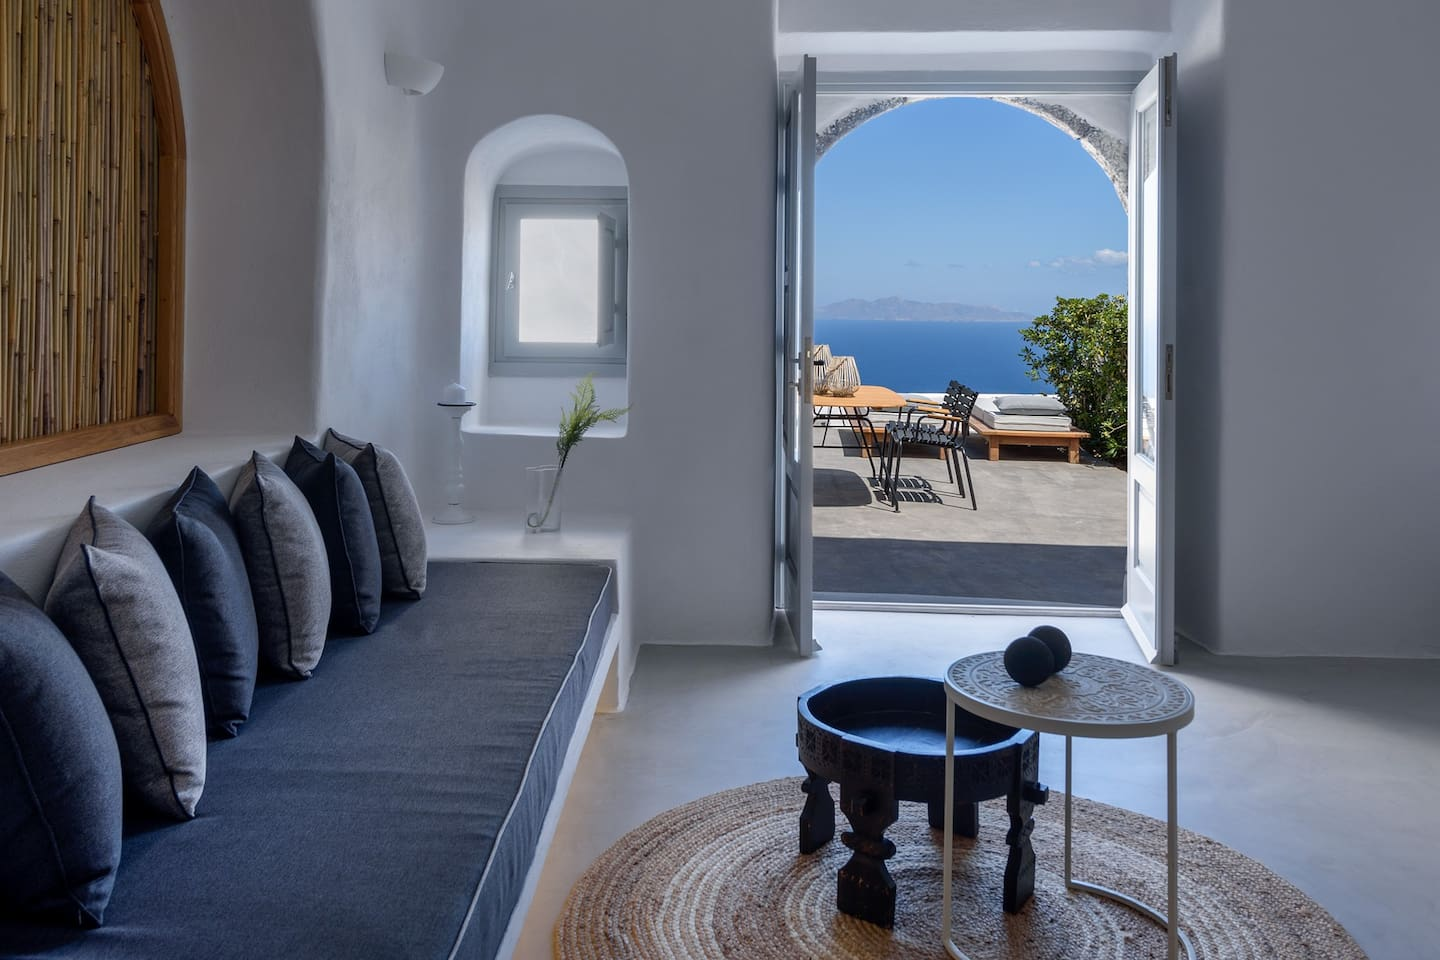 Adele villa with private heated plunge pool ,living room with sea view, teracce with sunbeds and sitting area